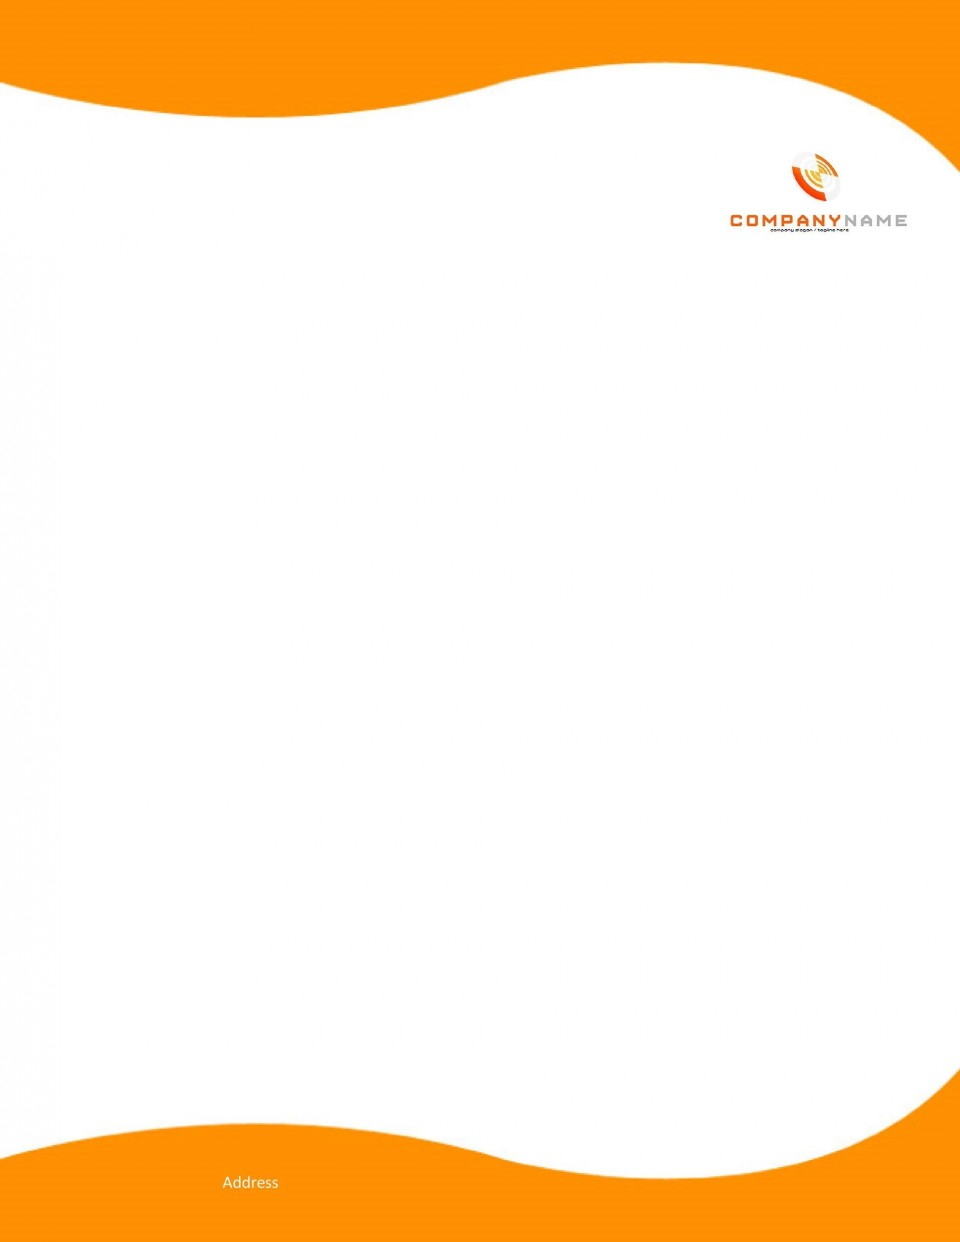 007 Fantastic Letterhead Example Free Download Design  Format In Word For Company Pdf960